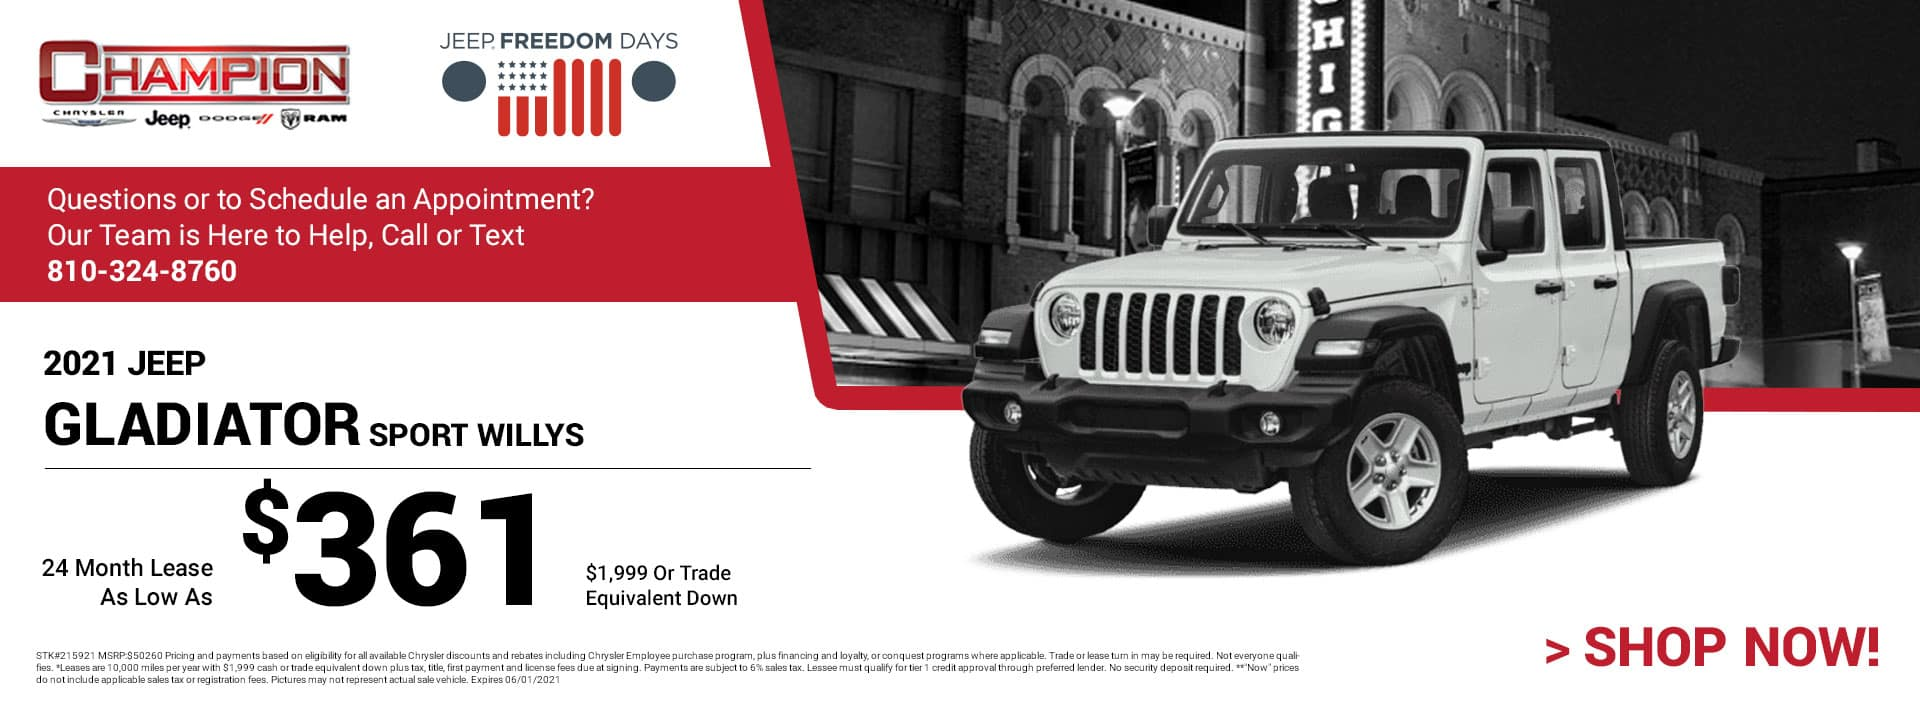 2021 Jeep Gladiator Sport Willys 215921 $50,260 $1,999 or Trade Equivalent Down 24 $361